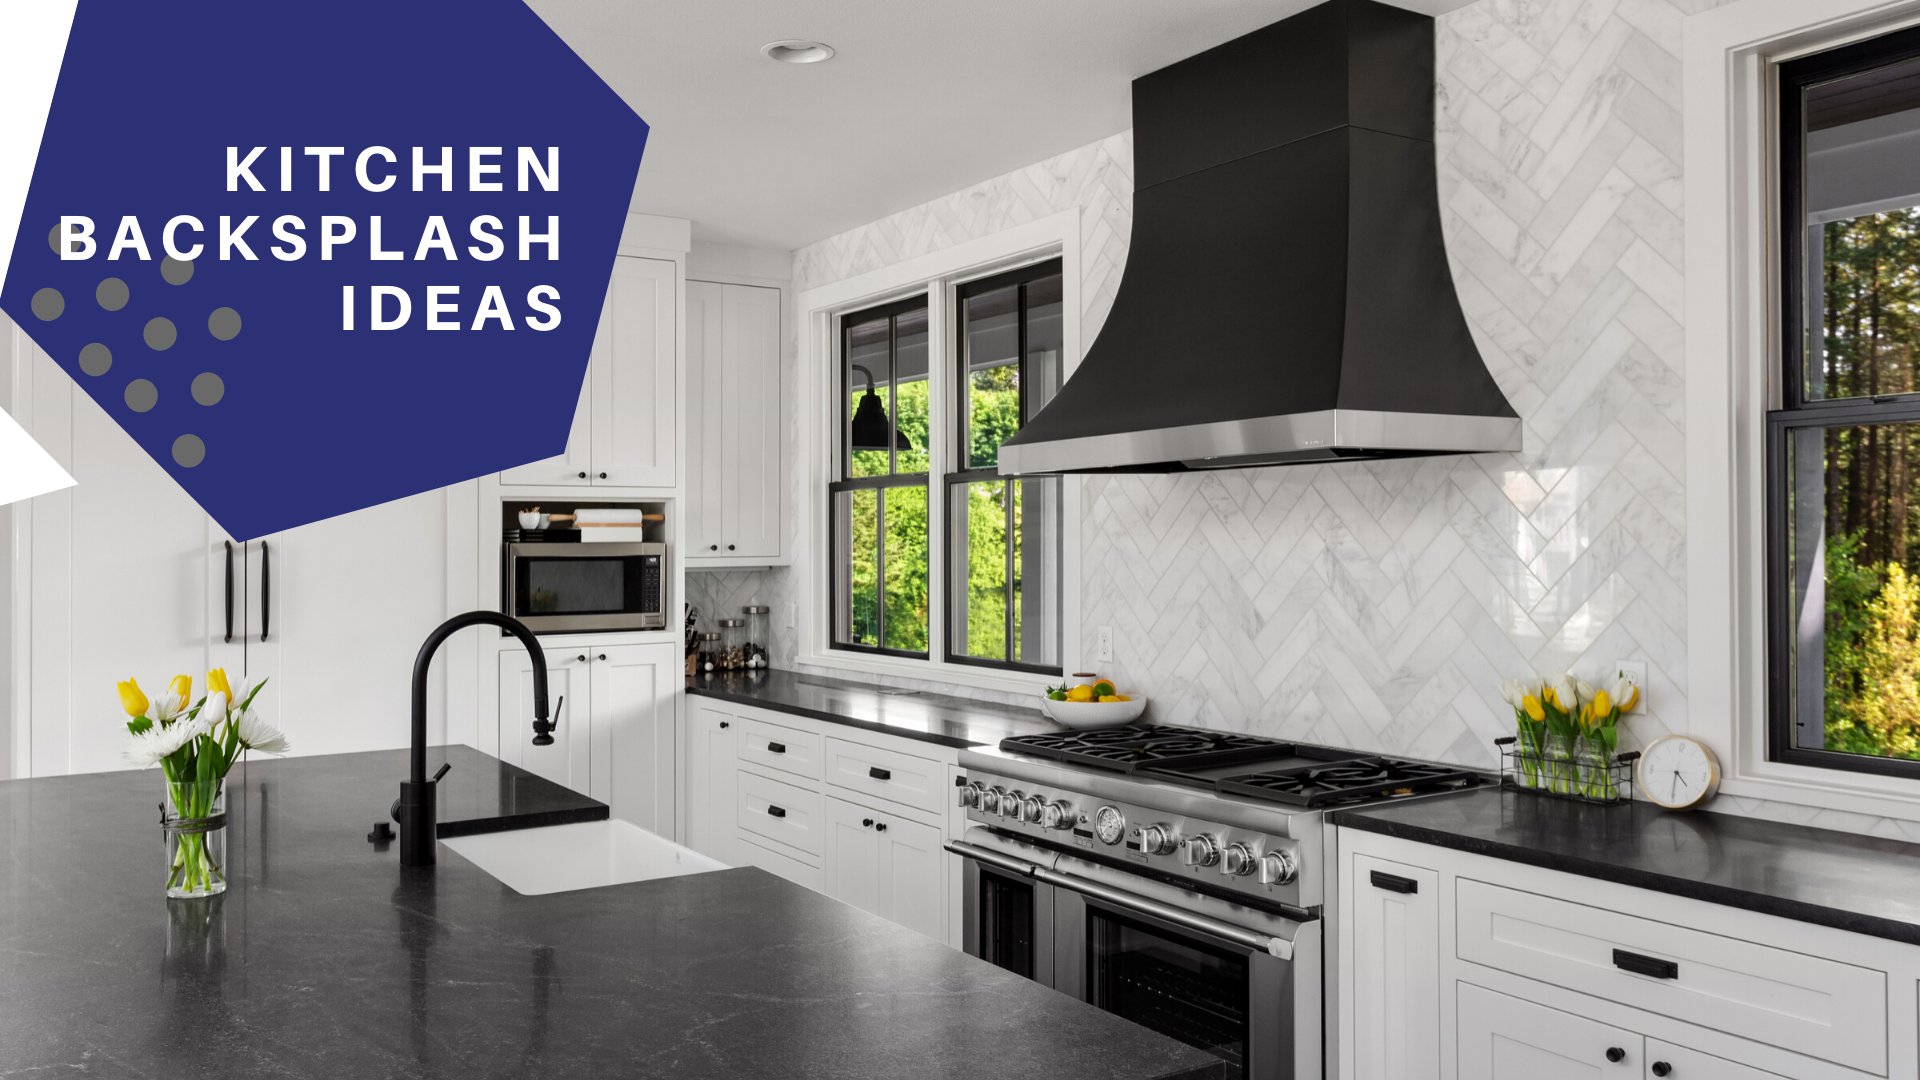 Kitchen Backsplash Ideas - Tile Superstore & more